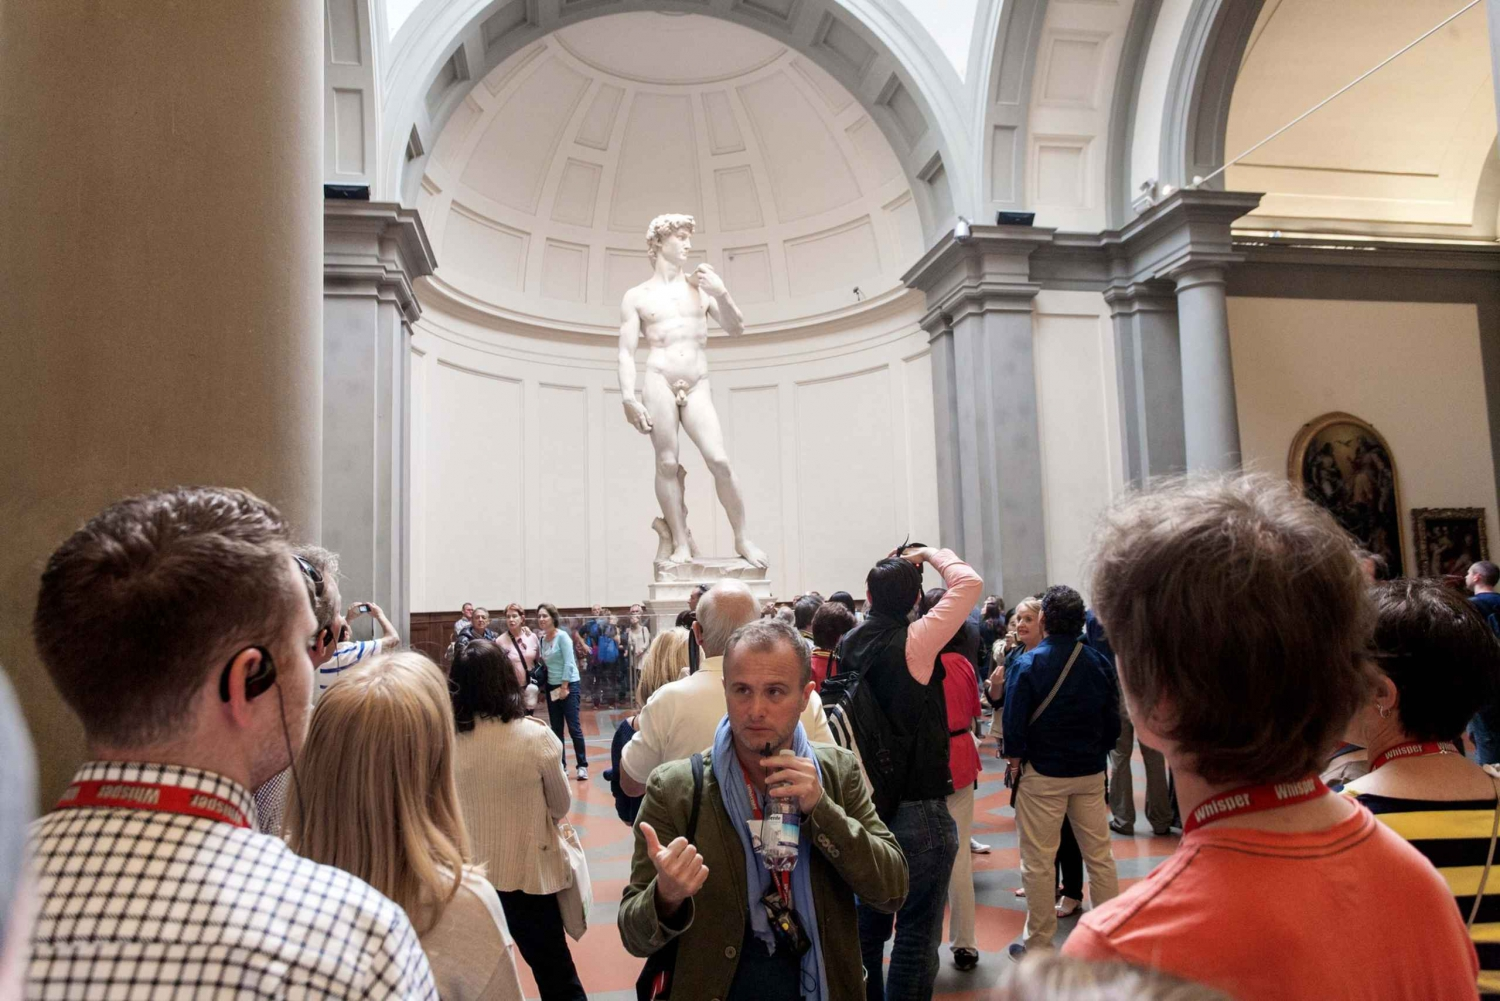 David at Accademia Gallery: Skip-the-Line Guided Tour